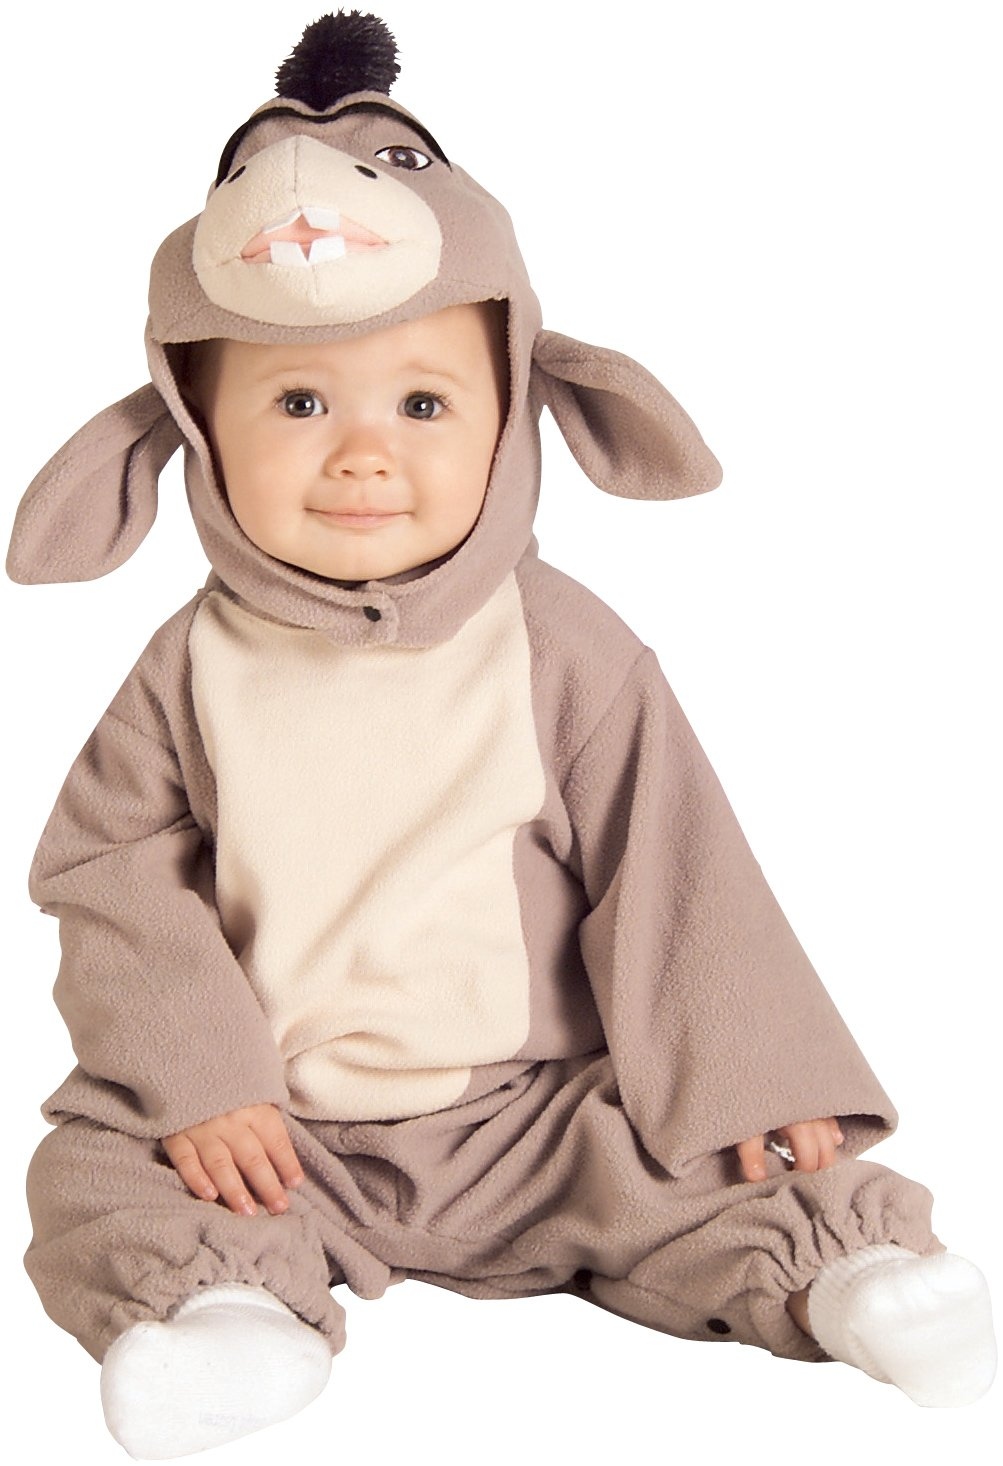 Shrek - Donkey Infant/Toddler Costume